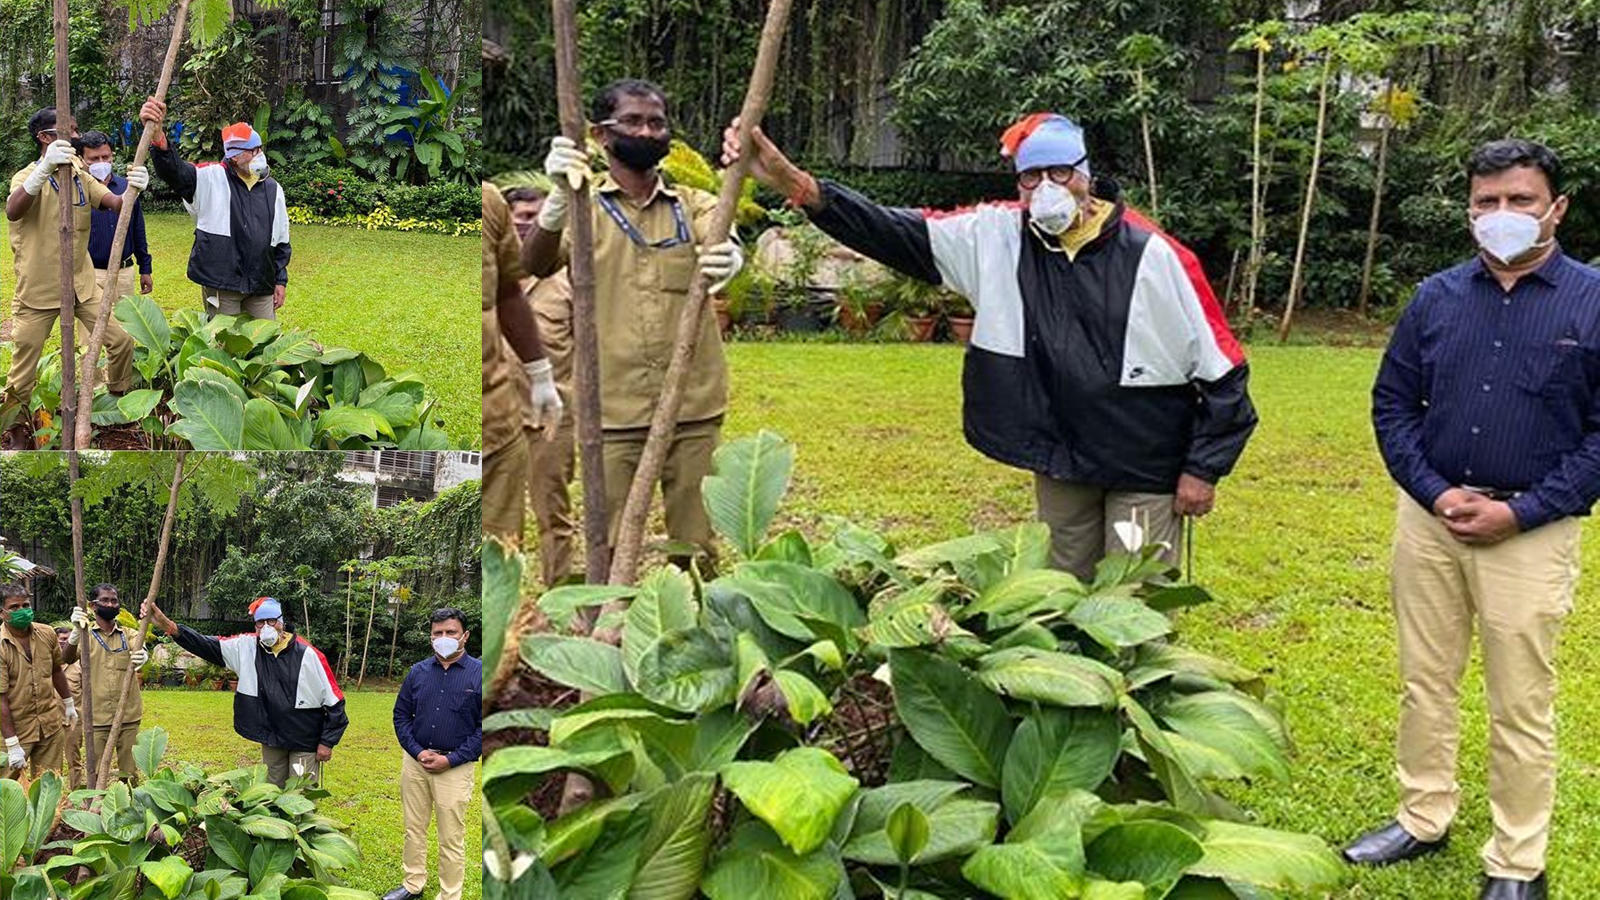 covid-19-survivor-amitabh-bachchan-shares-picturesque-view-of-his-garden-as-he-plants-gulmohar-sapling-on-mother-teji-bachchans-birth-anniversary